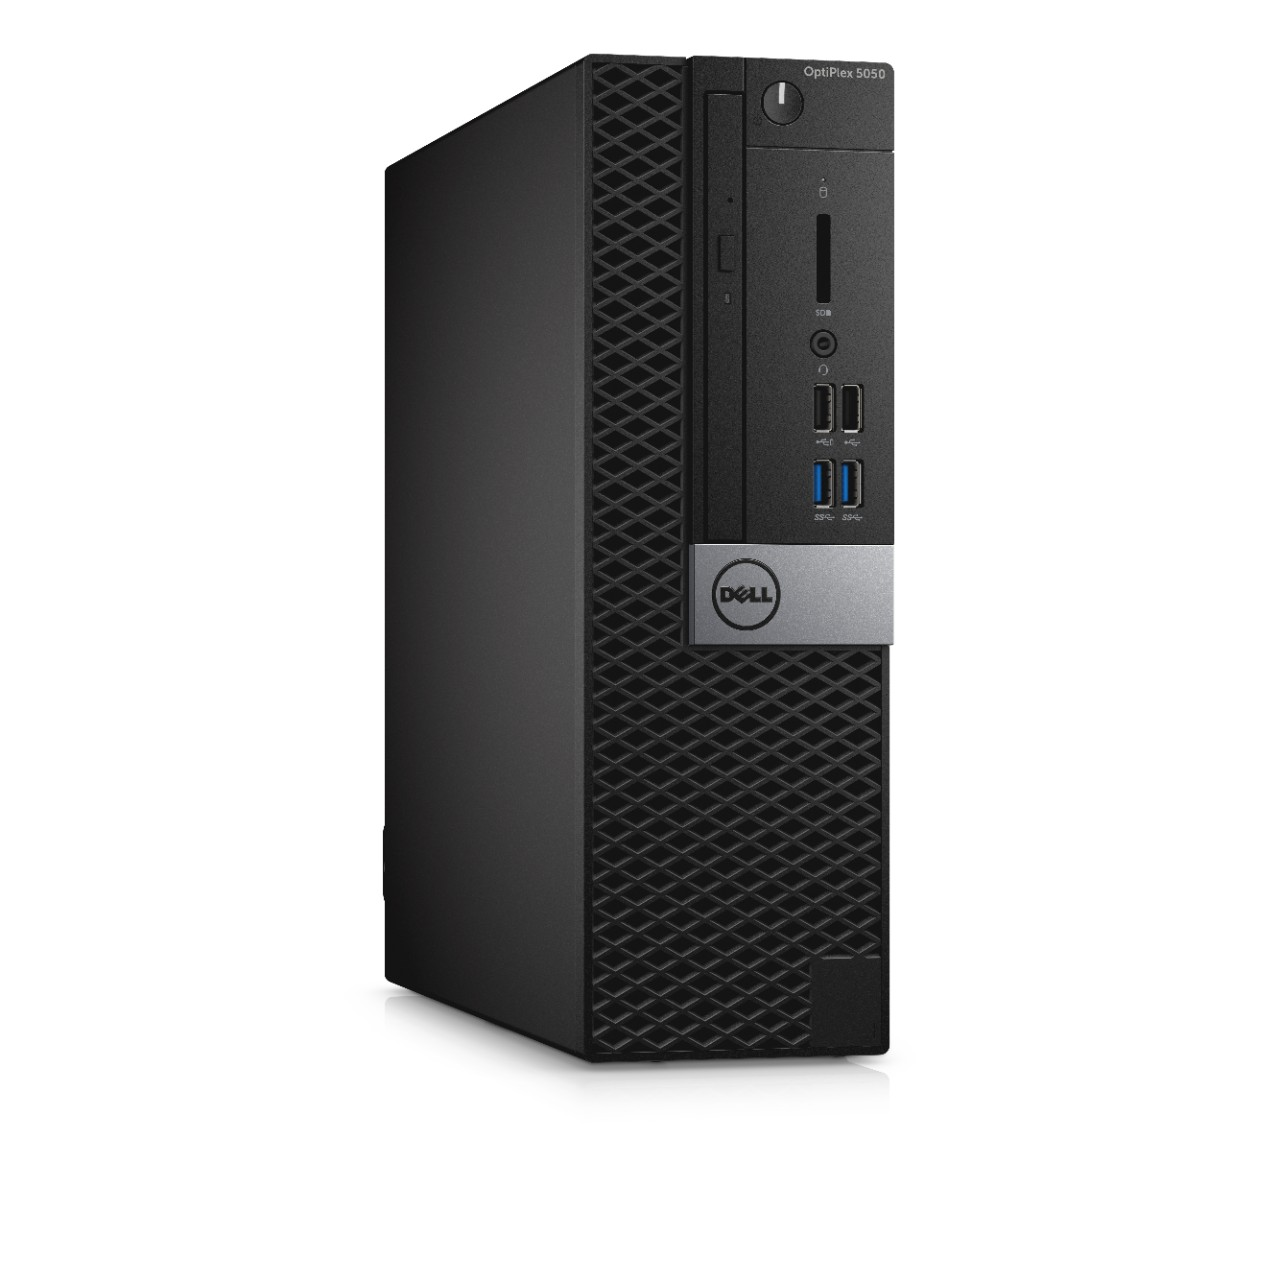 Dell PC Optiplex 5050 SF i5-6600/4G/1TB/DP/HDMI/W10P/5rNBD PrSu